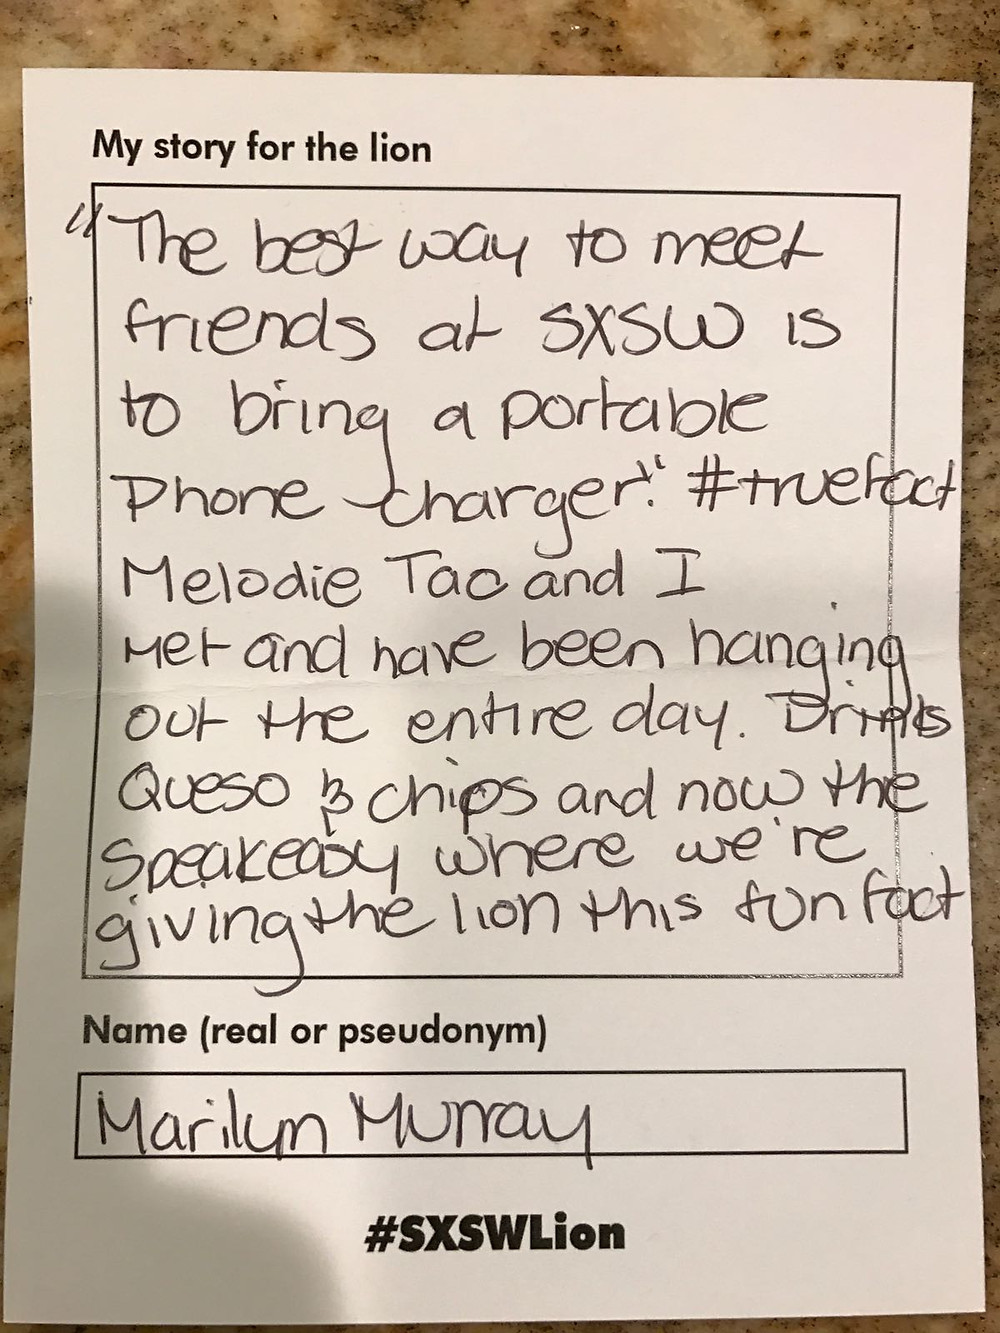 Marilyn Murray fed this story to the lion